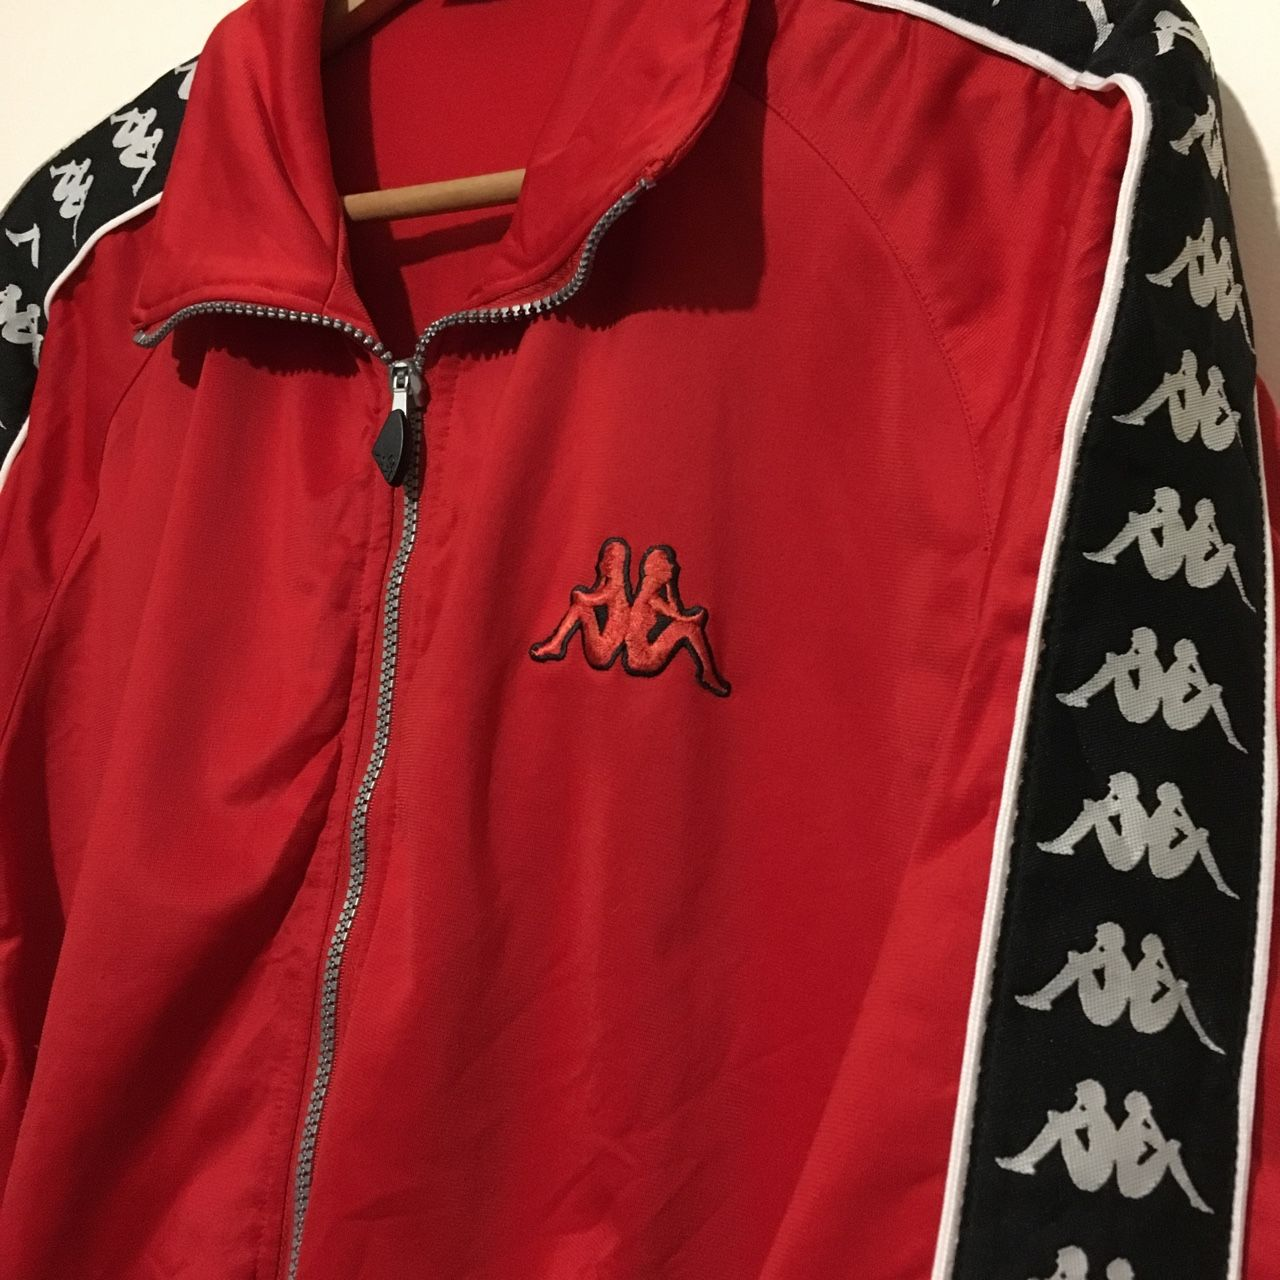 e95ed921db6cfe Kappa x FSV SALMROHR (German Football) Jacket   Track Top with classic  kappa ribbon detailing. Labelled 2XL but fits like an XL. Would looks great  oversized ...